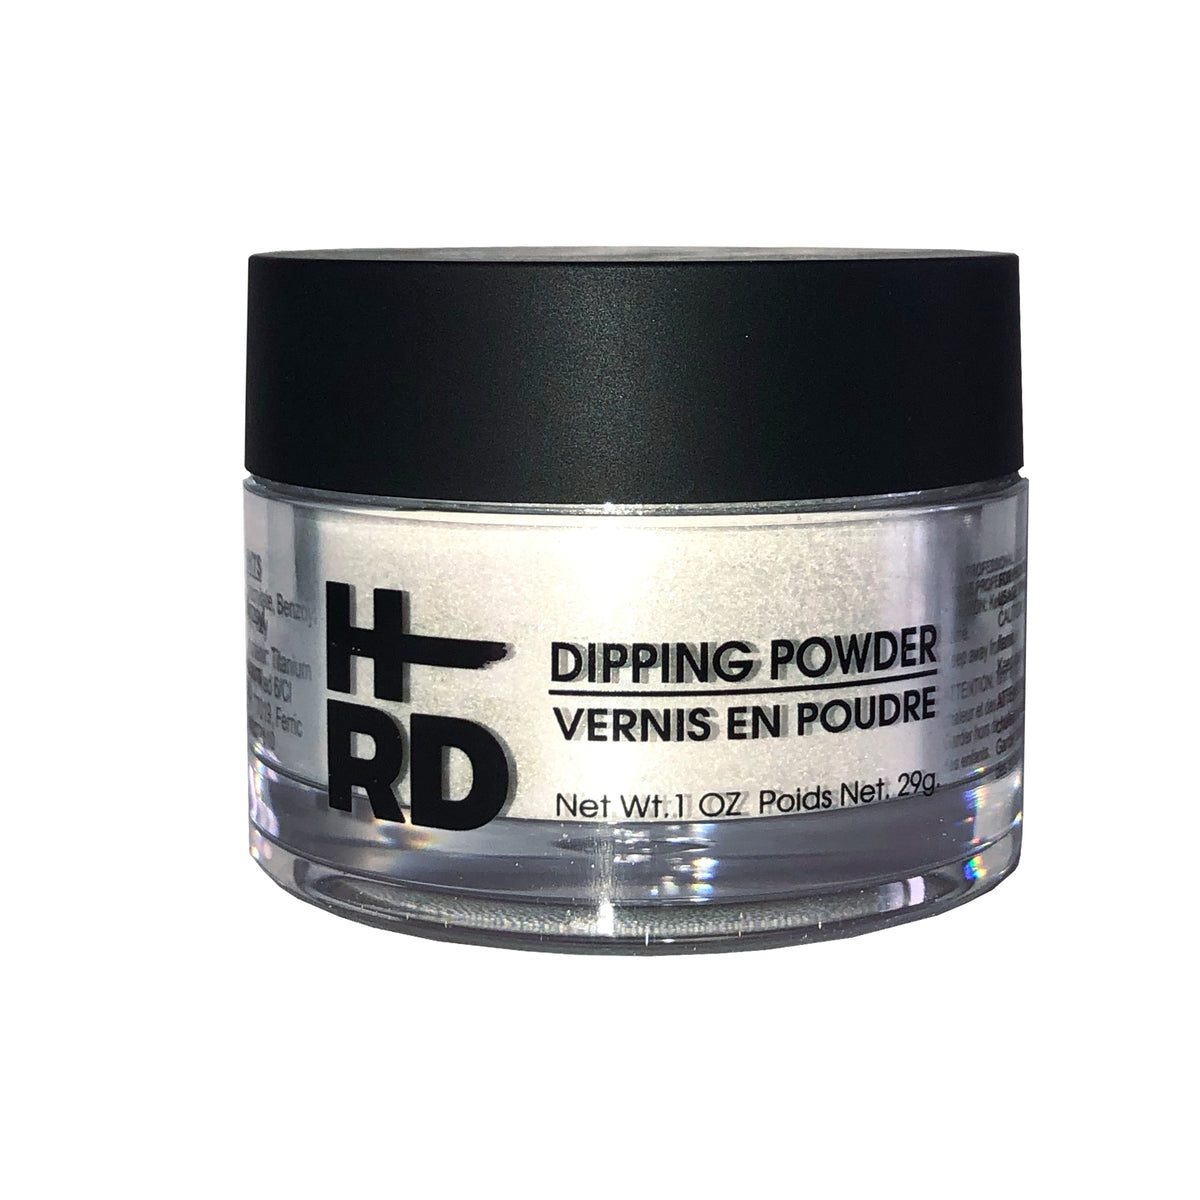 HRD-057 powder